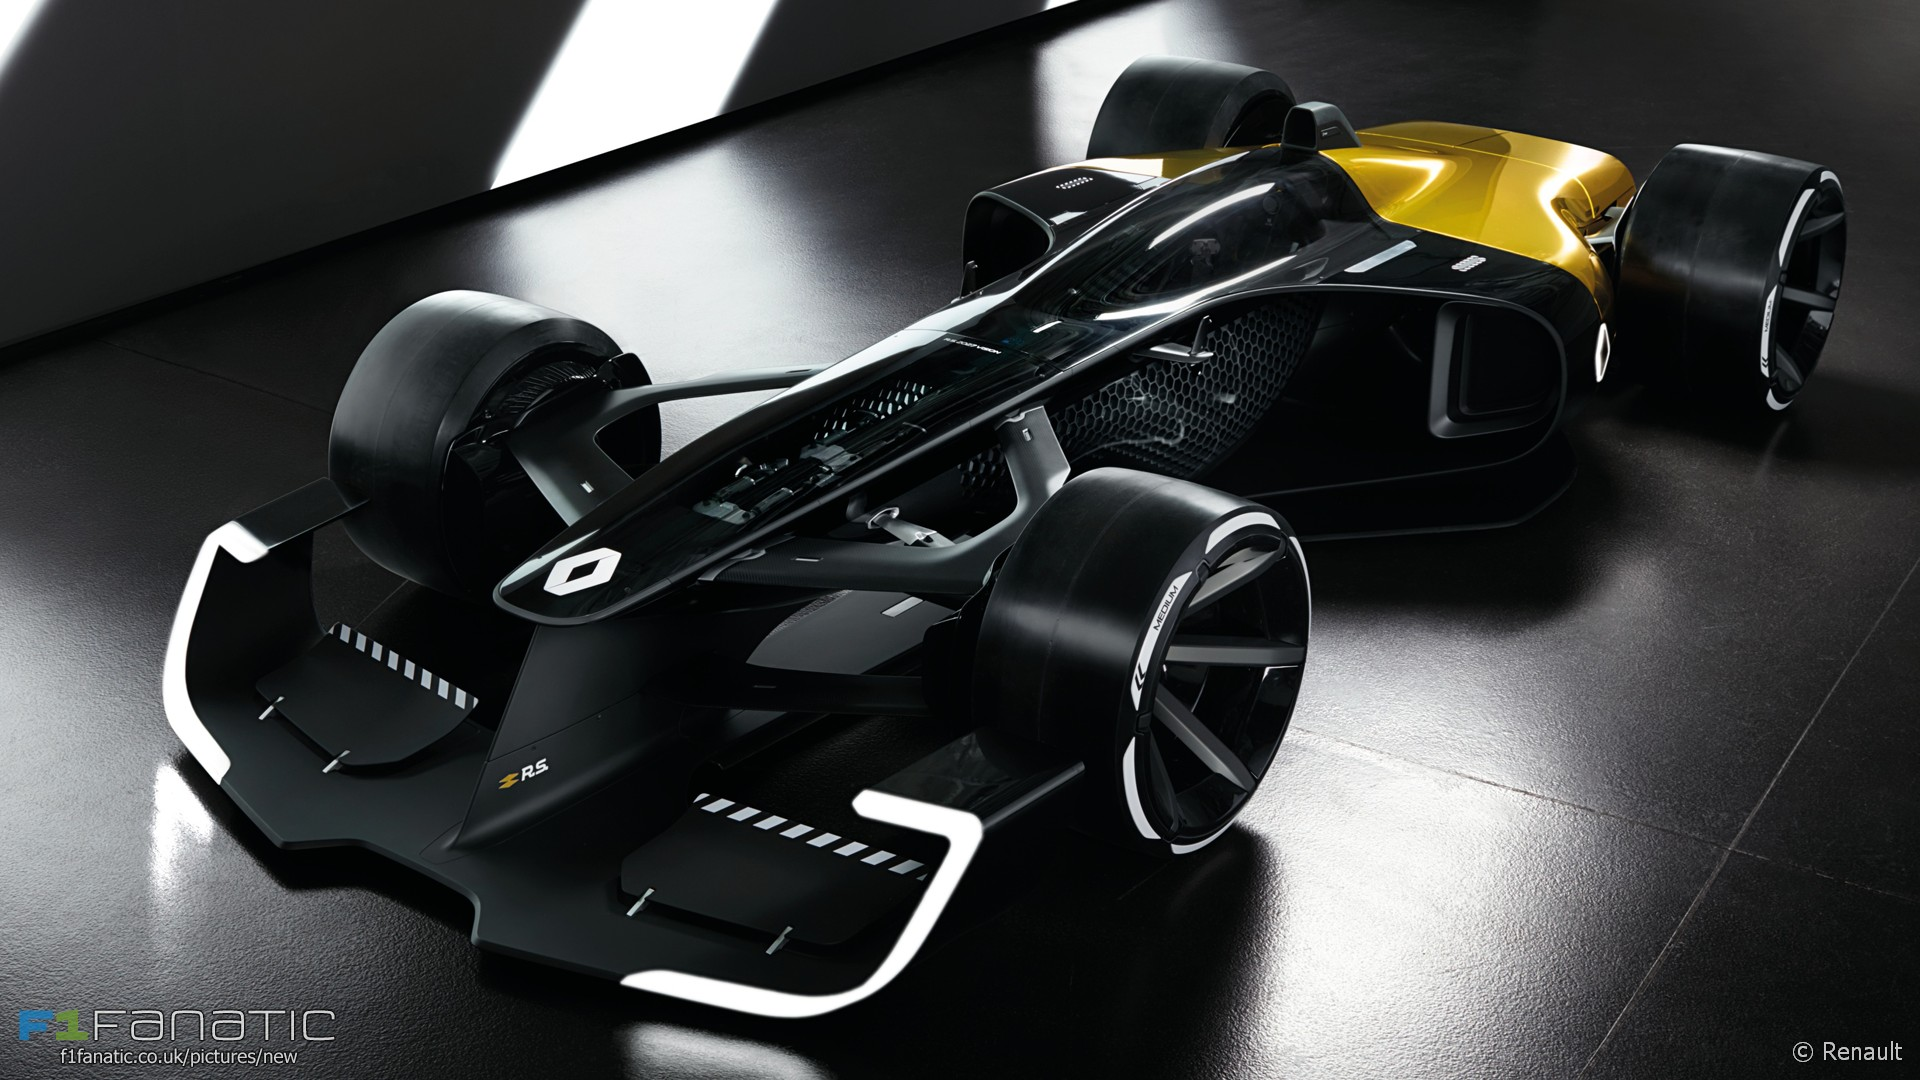 Renault RS 2027 vision F1 car concept